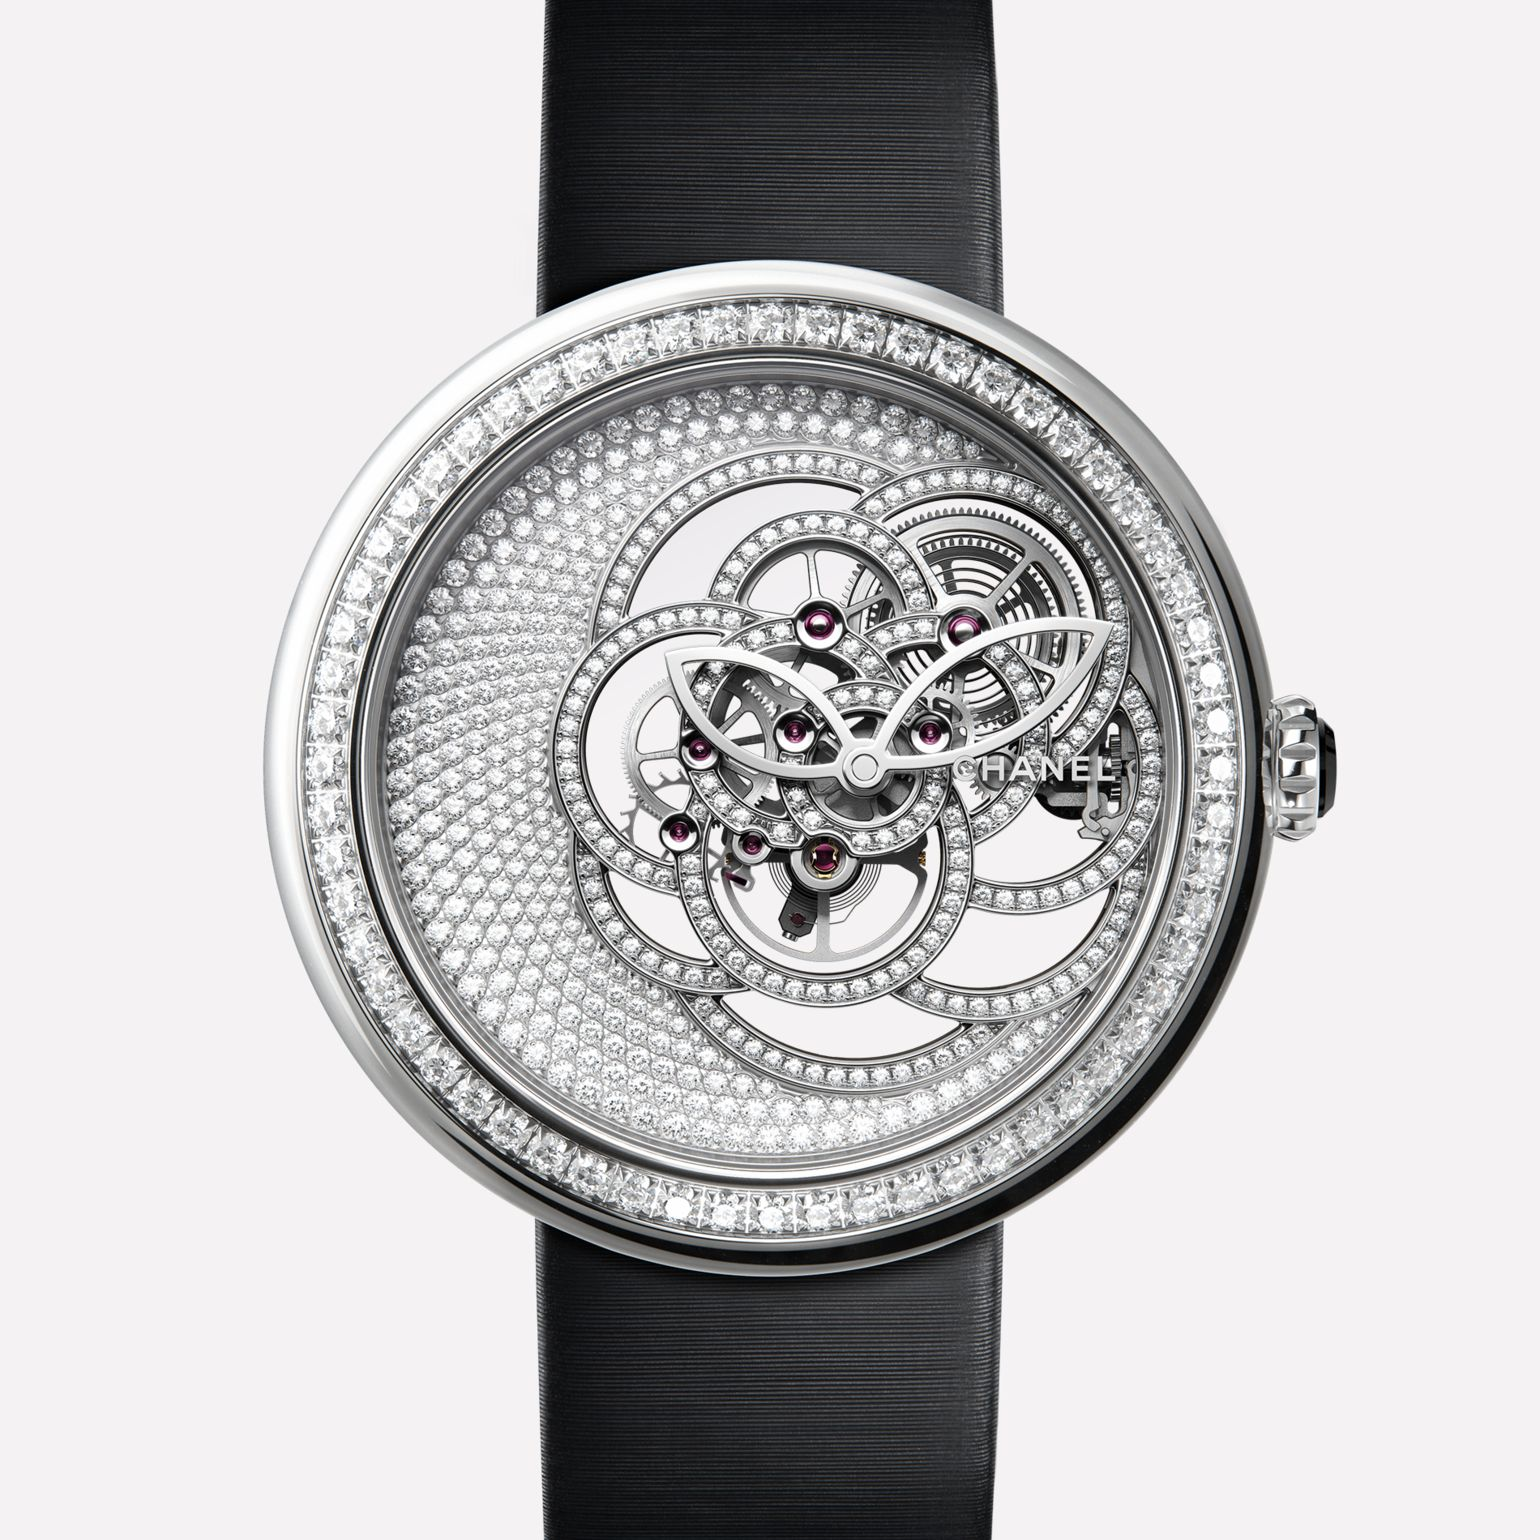 Mademoiselle Privé Camélia Skeleton Watch White gold case, dial and skeleton set with brilliant-cut diamonds